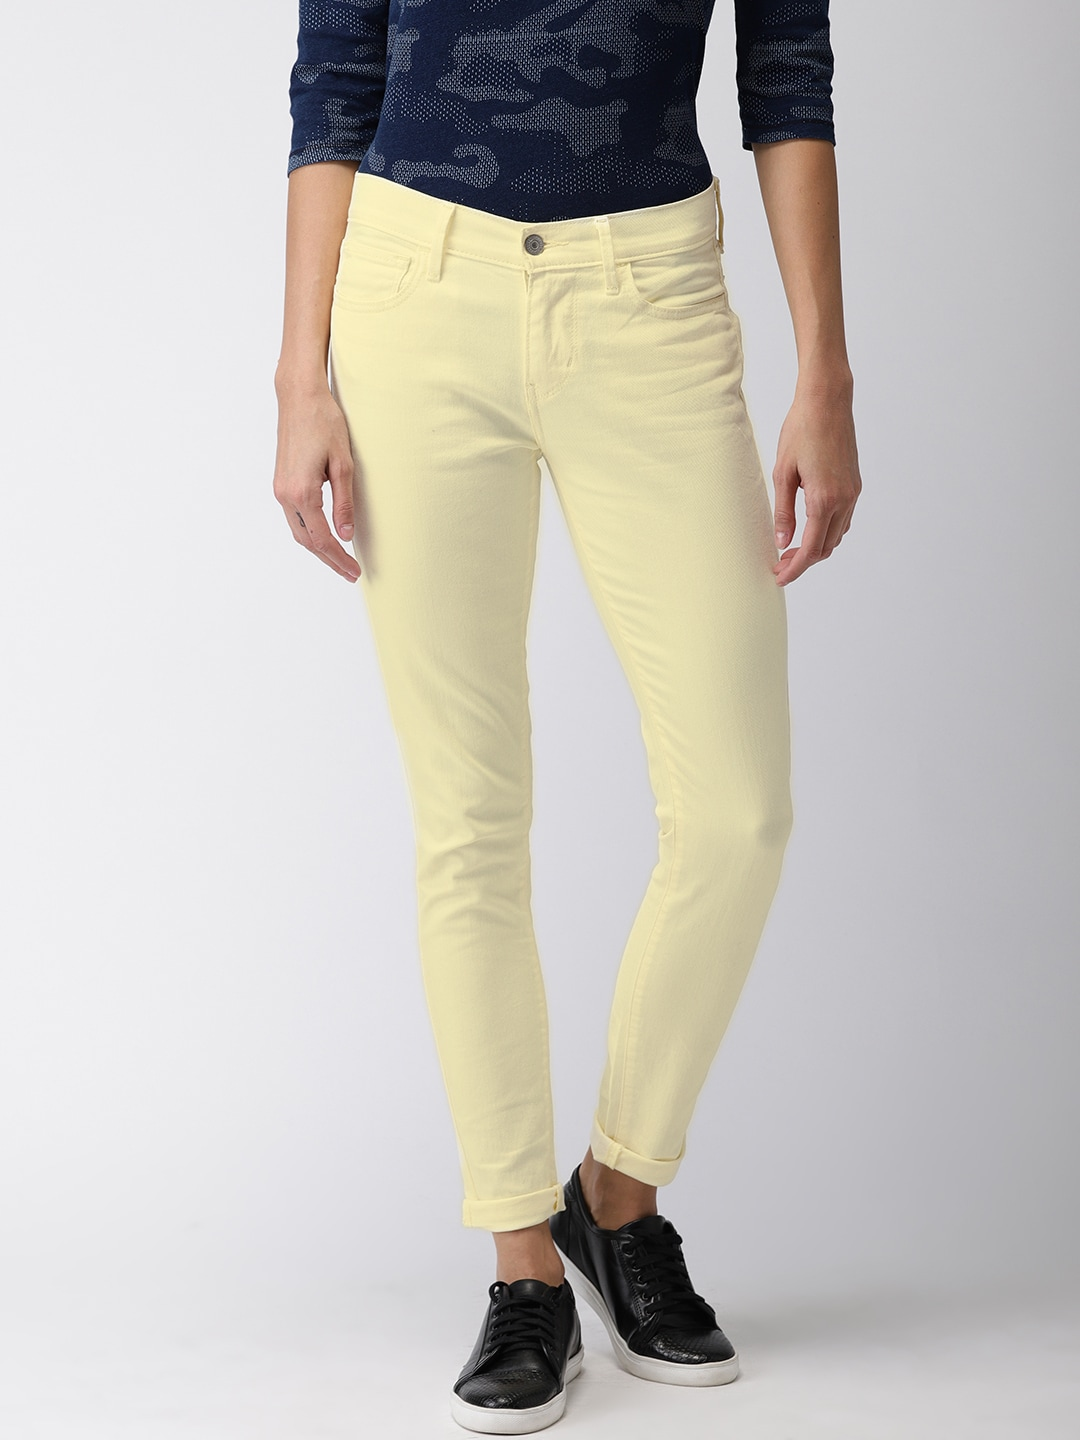 1e9a266cf9b1 Coloured Jeans Women - Buy Coloured Jeans Women online in India